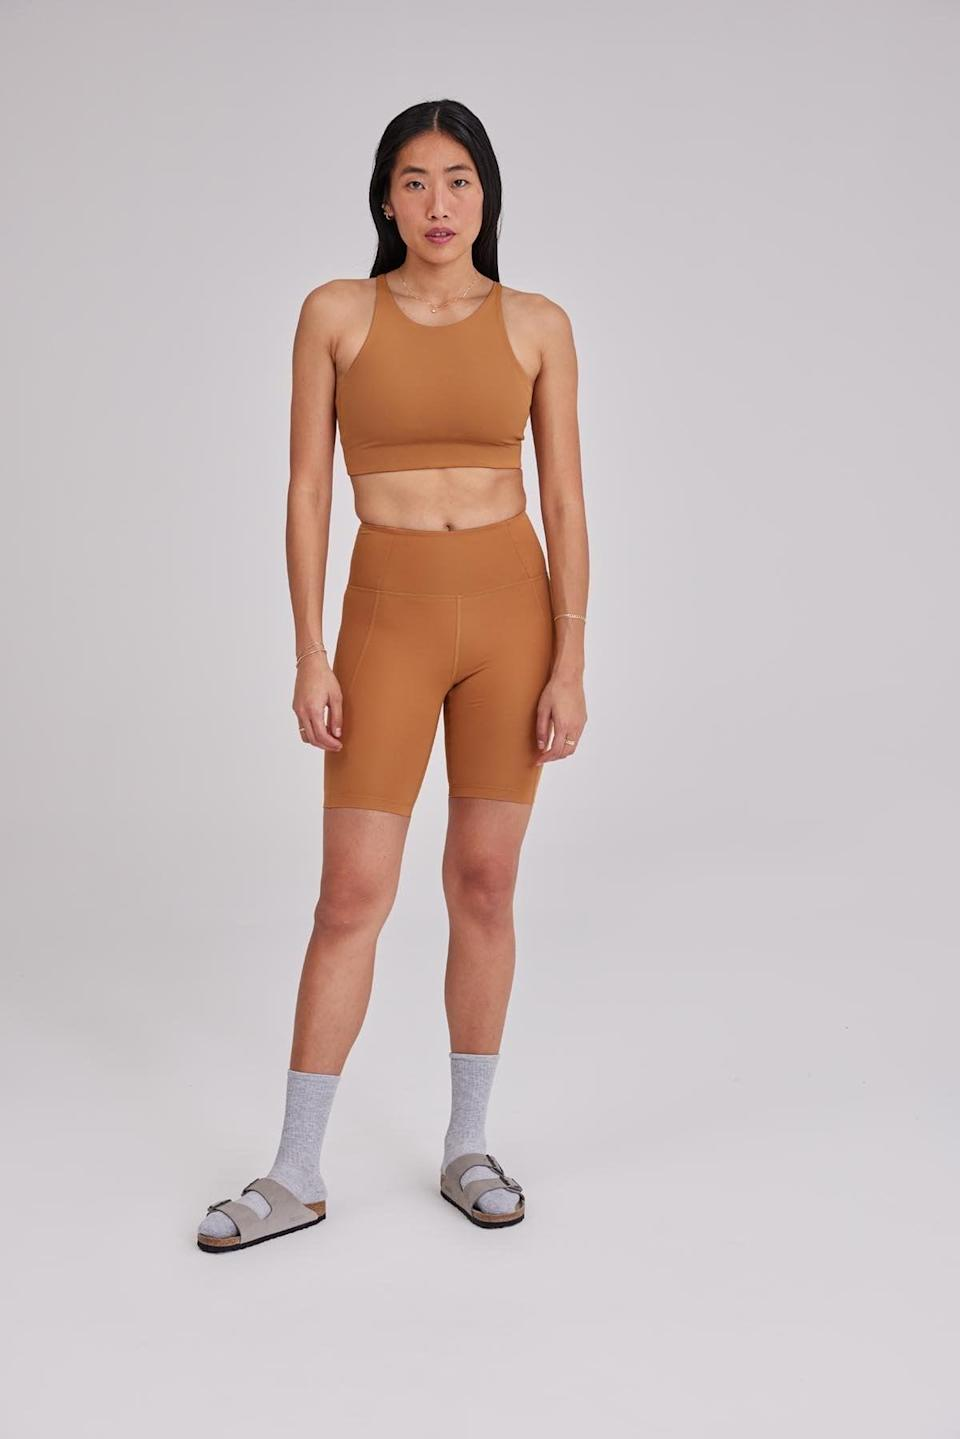 <p>Spring is coming, and we plan on wearing the <span>Girlfriend Collective High-Rise Bike Short</span> ($48) and <span>Topanga Bra</span> ($38) to celebrate.</p>